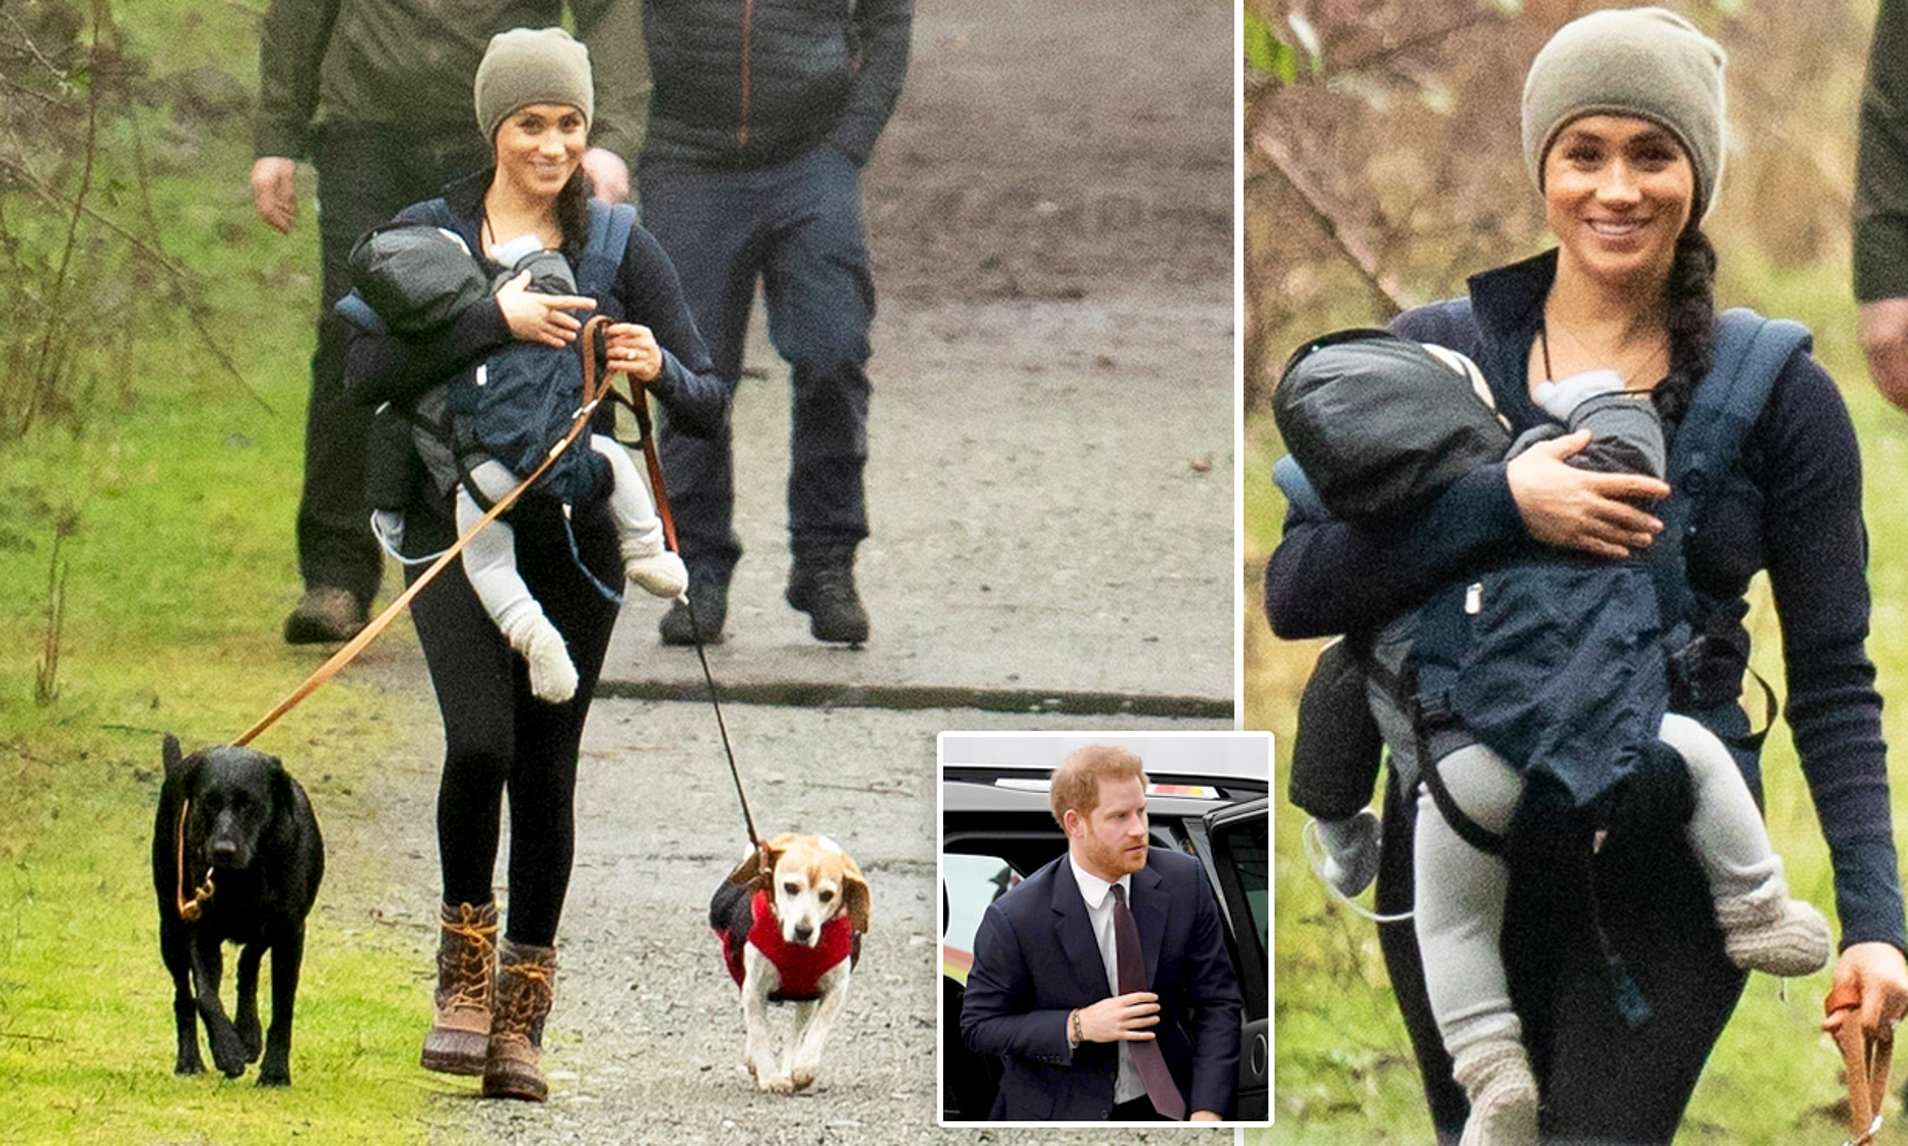 Meghan carrying Archie/ mom shaming Meghan markle